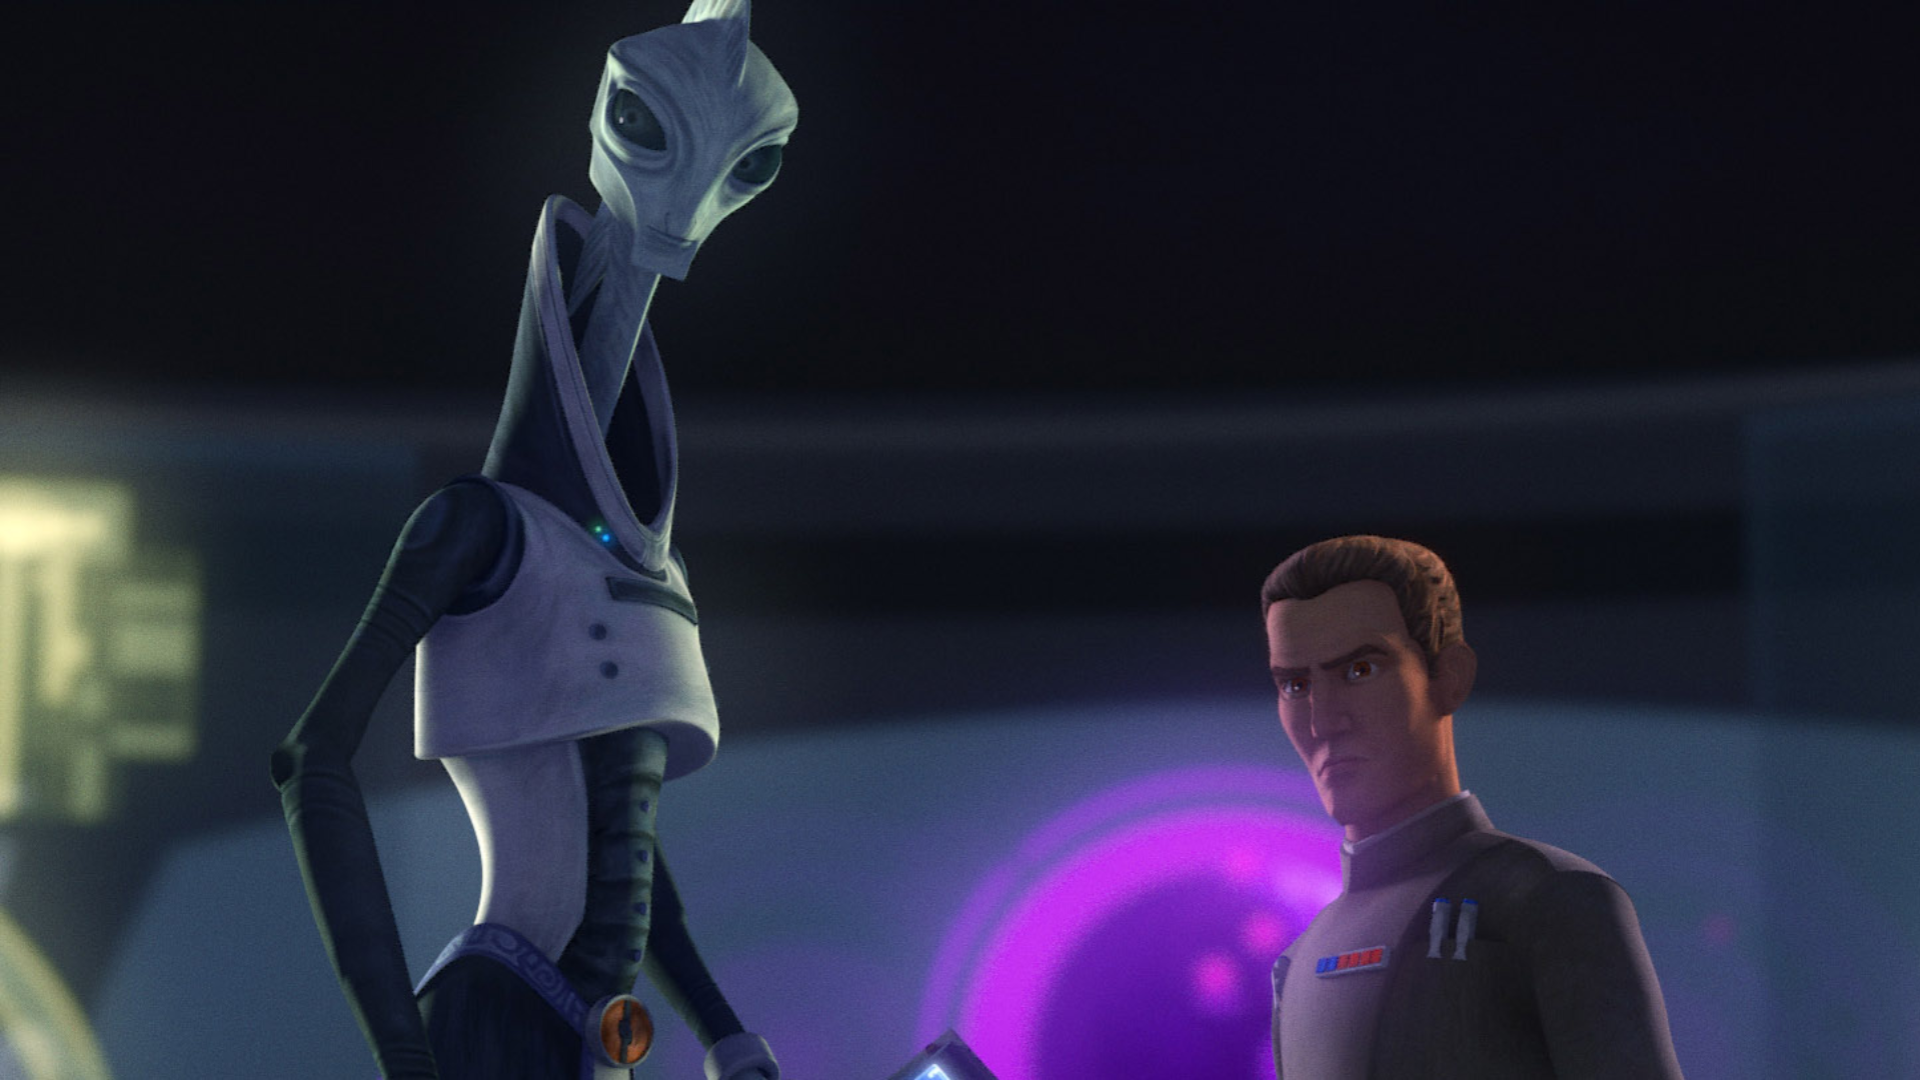 Another 'Clone Wars' fave surfaces in 'Star Wars: The Bad Batch'